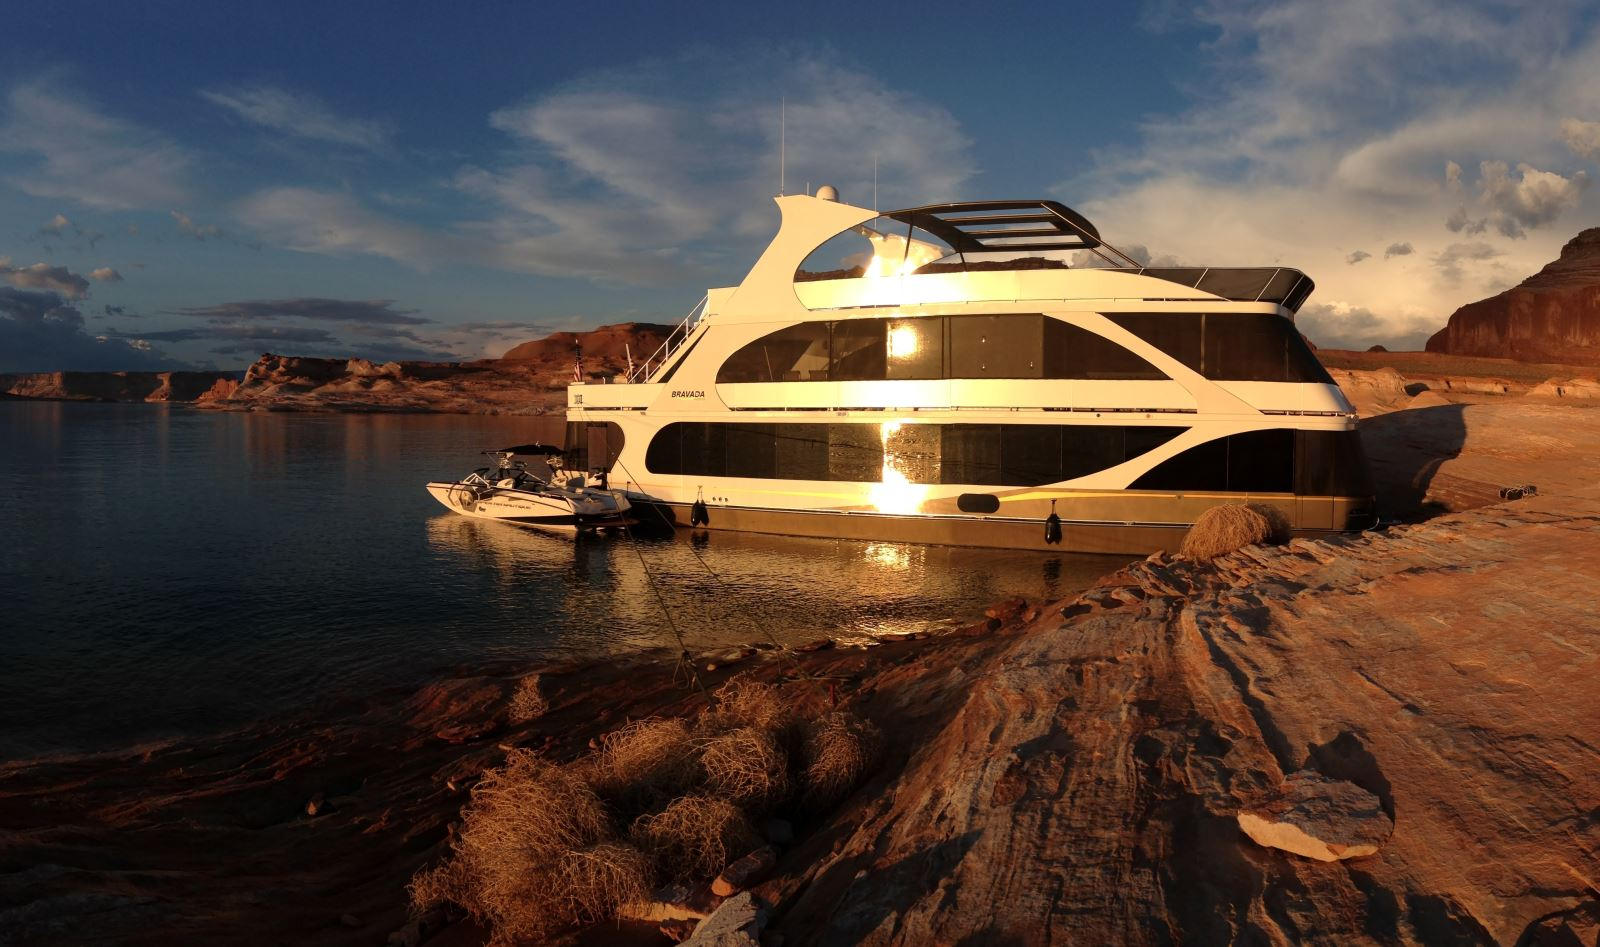 Contact Information: 602-278-3536/www.bravadayachts.com